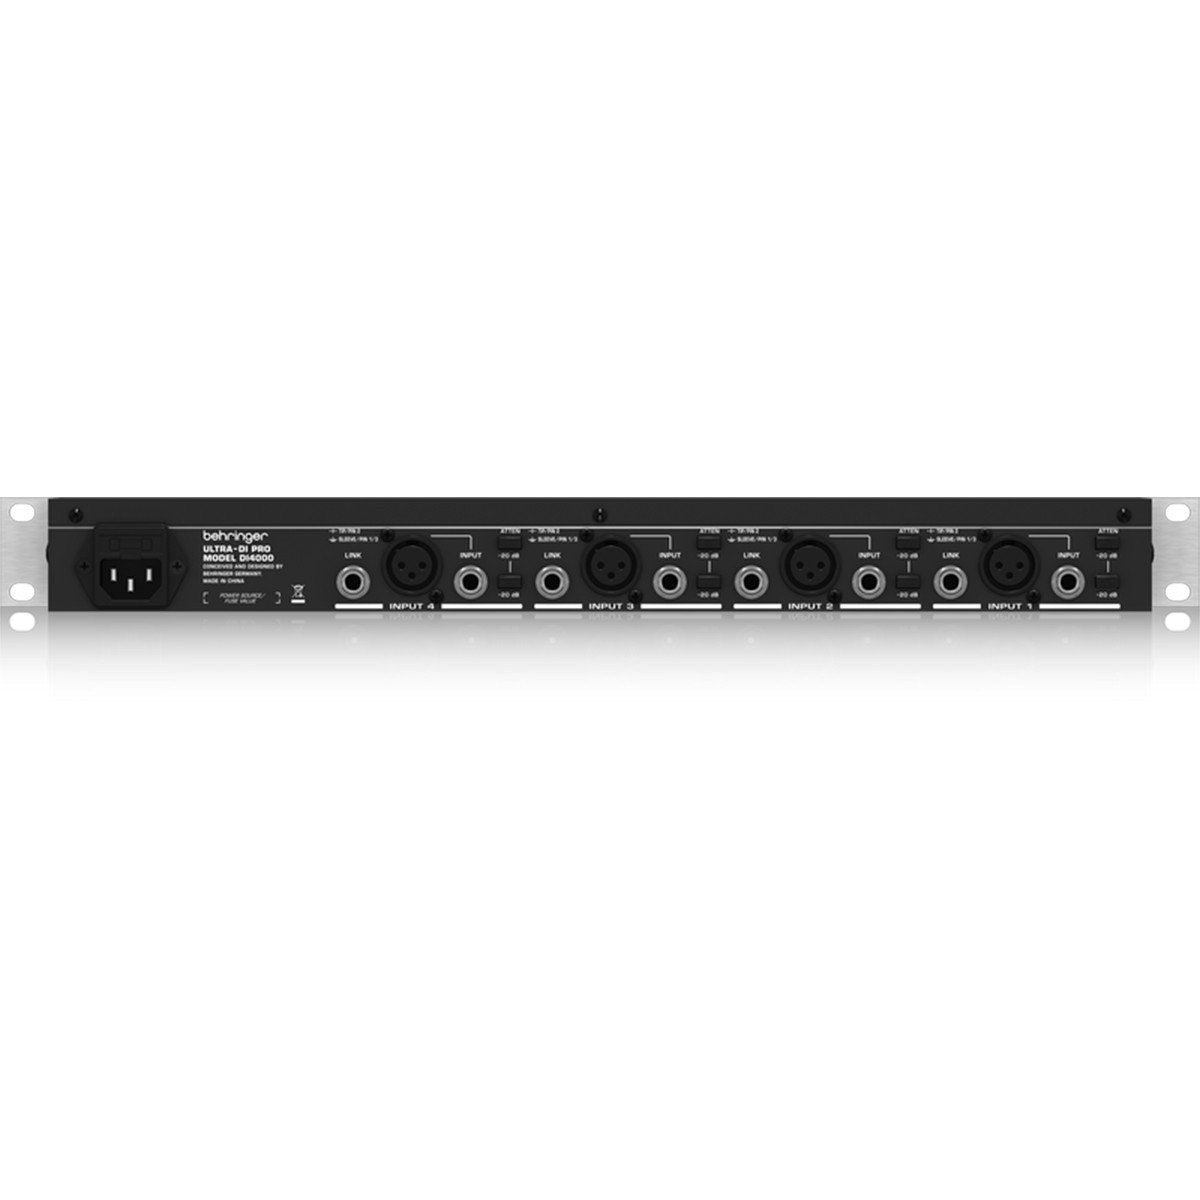 Behringer DI4000 Ultra-DI Direct Box Behringer DI4000 UltraDI Pro